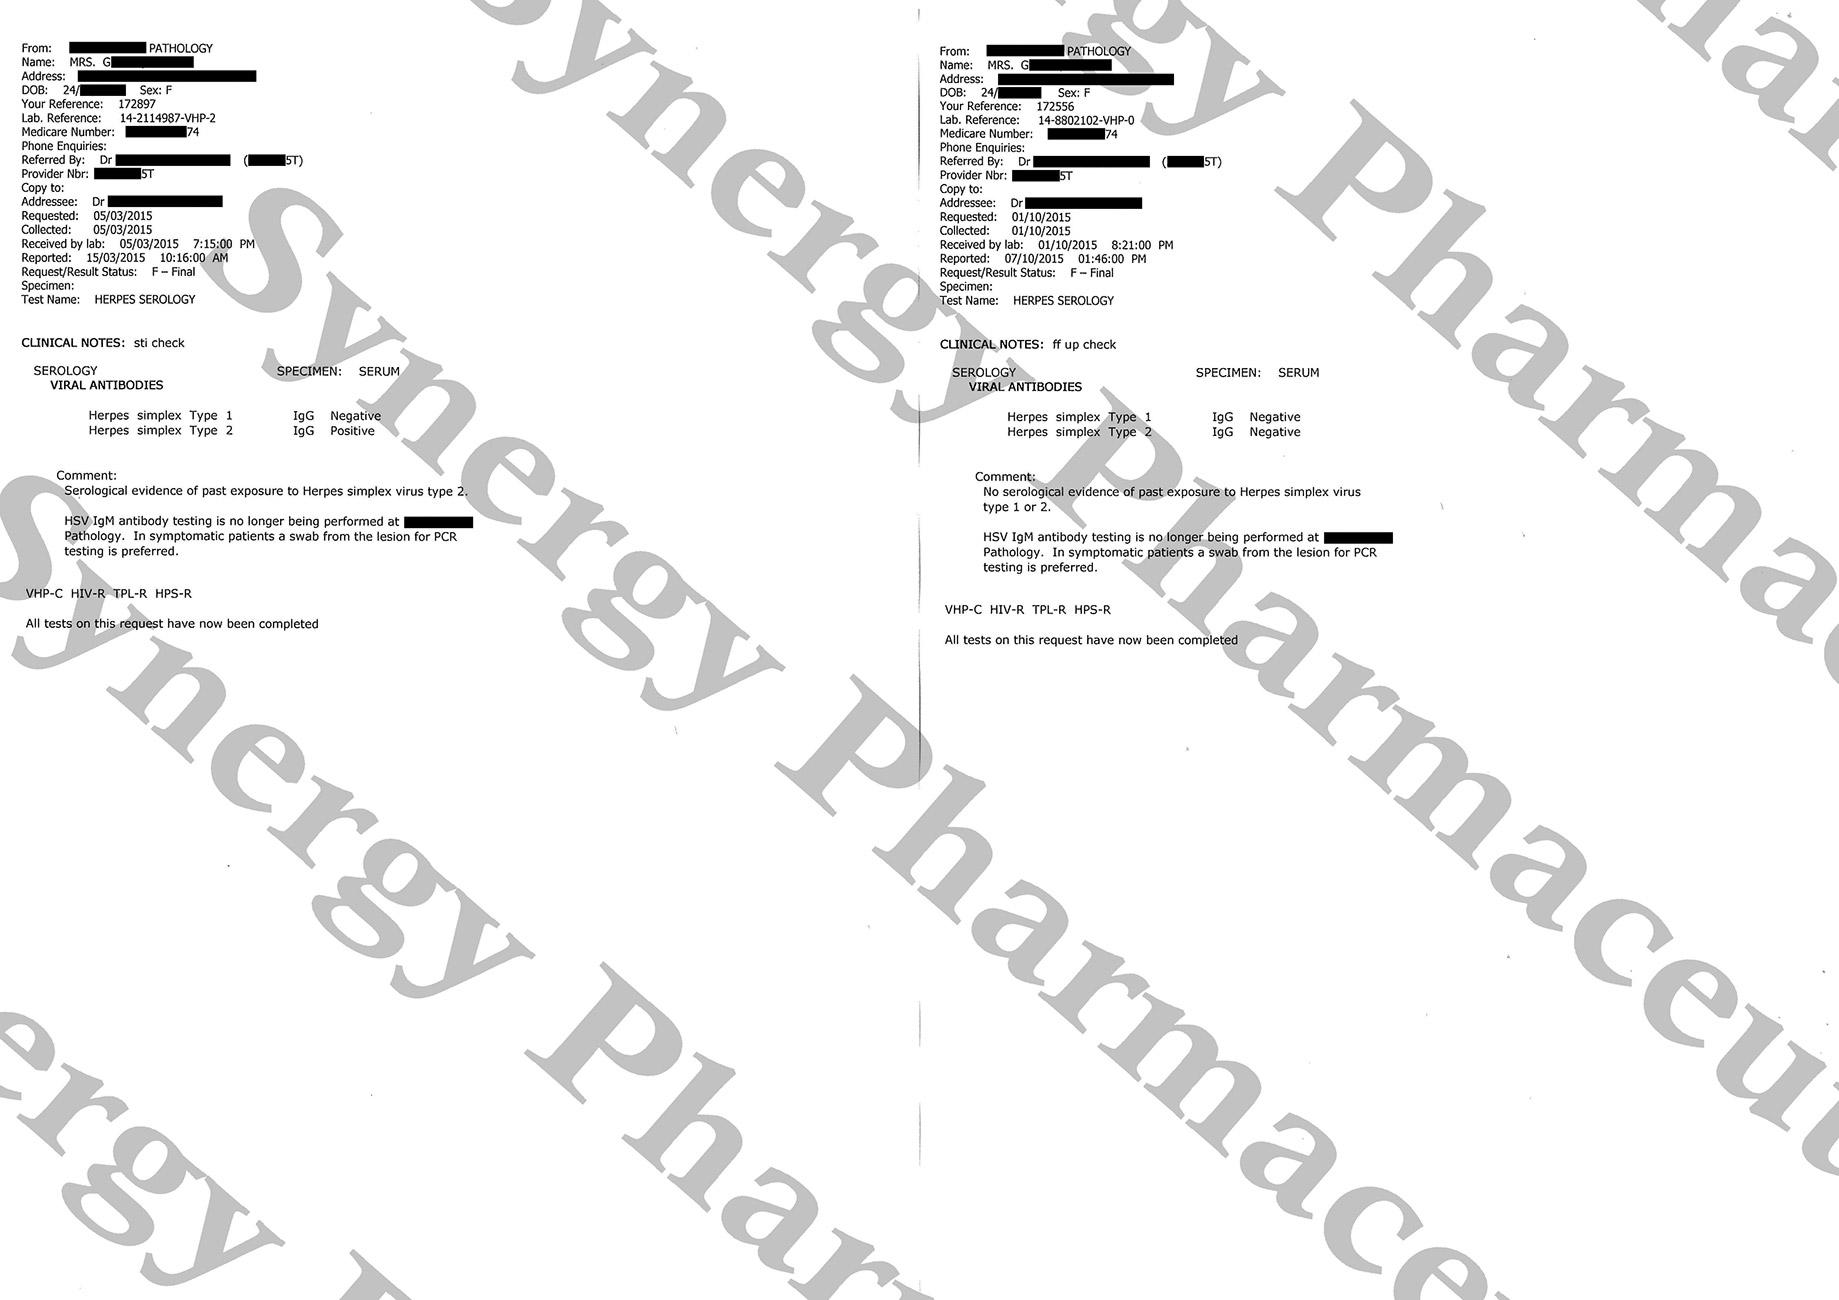 Results medication products for herpes - Treatment 4 Herpes